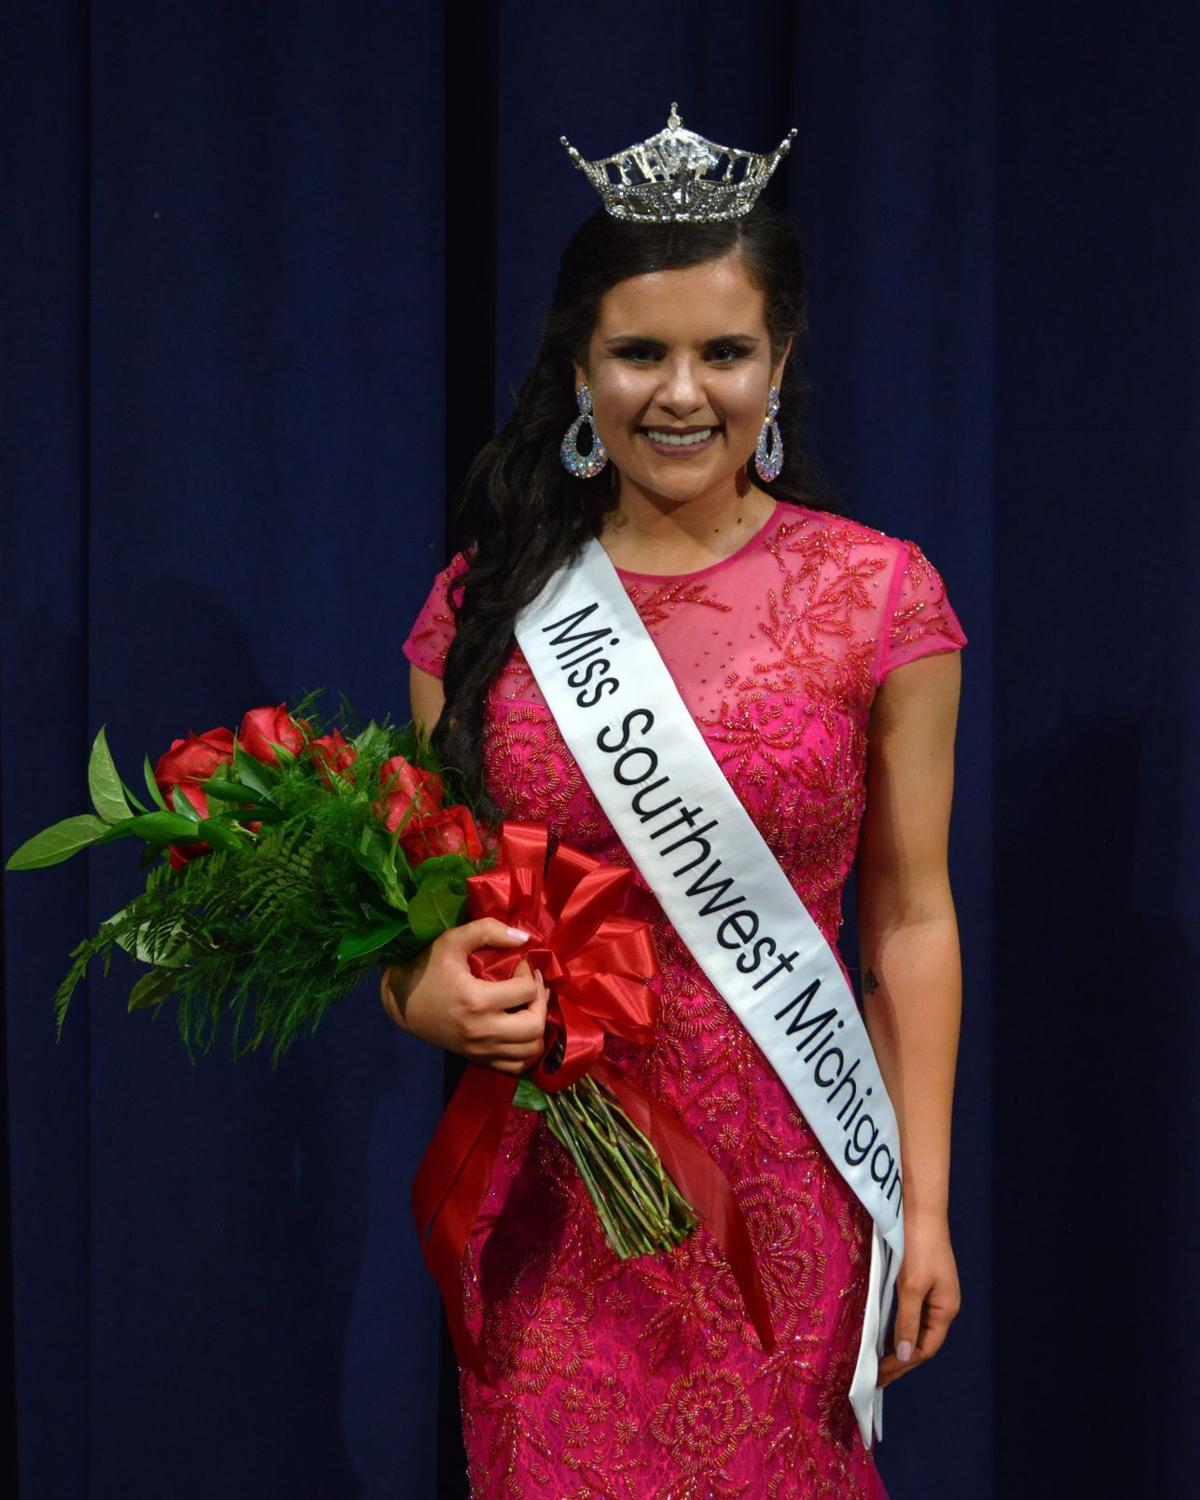 2022 Shelby Lentz Miss standing after crowning.JPG